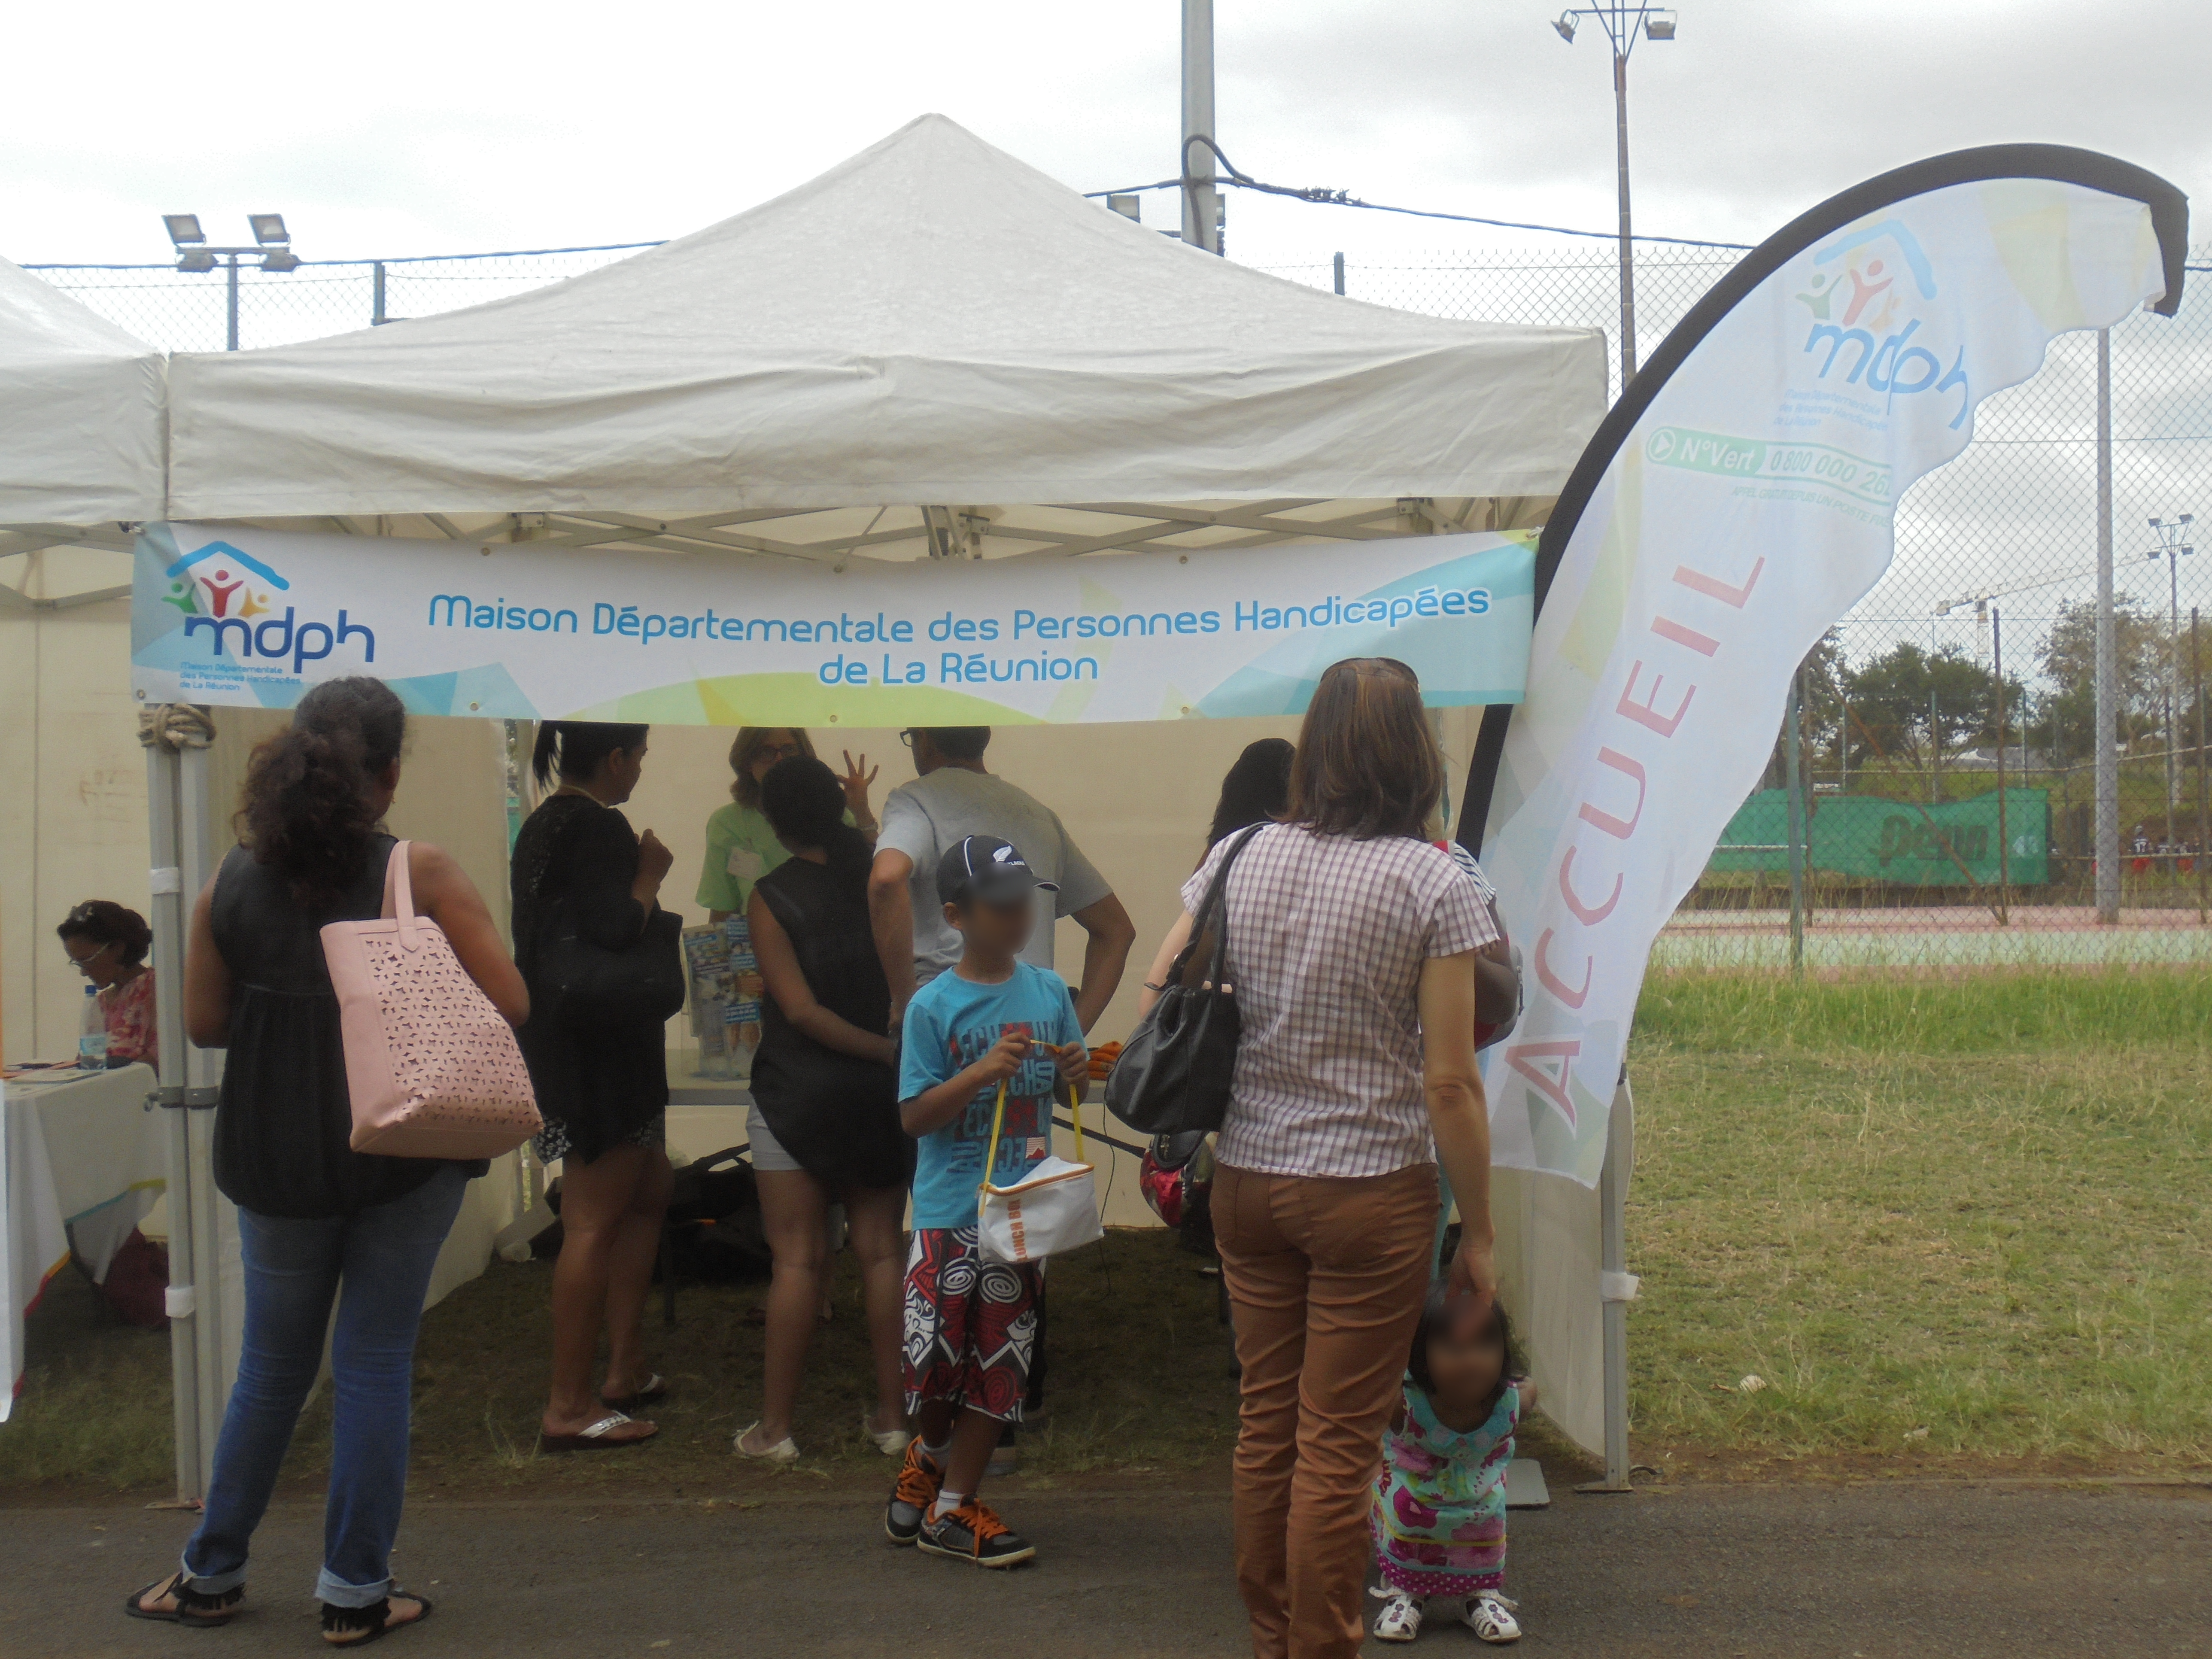 Photo Journee Nationale des Dys 2015 - 16 - Stand Maison Departemental des Personnes Handicapees.JPG